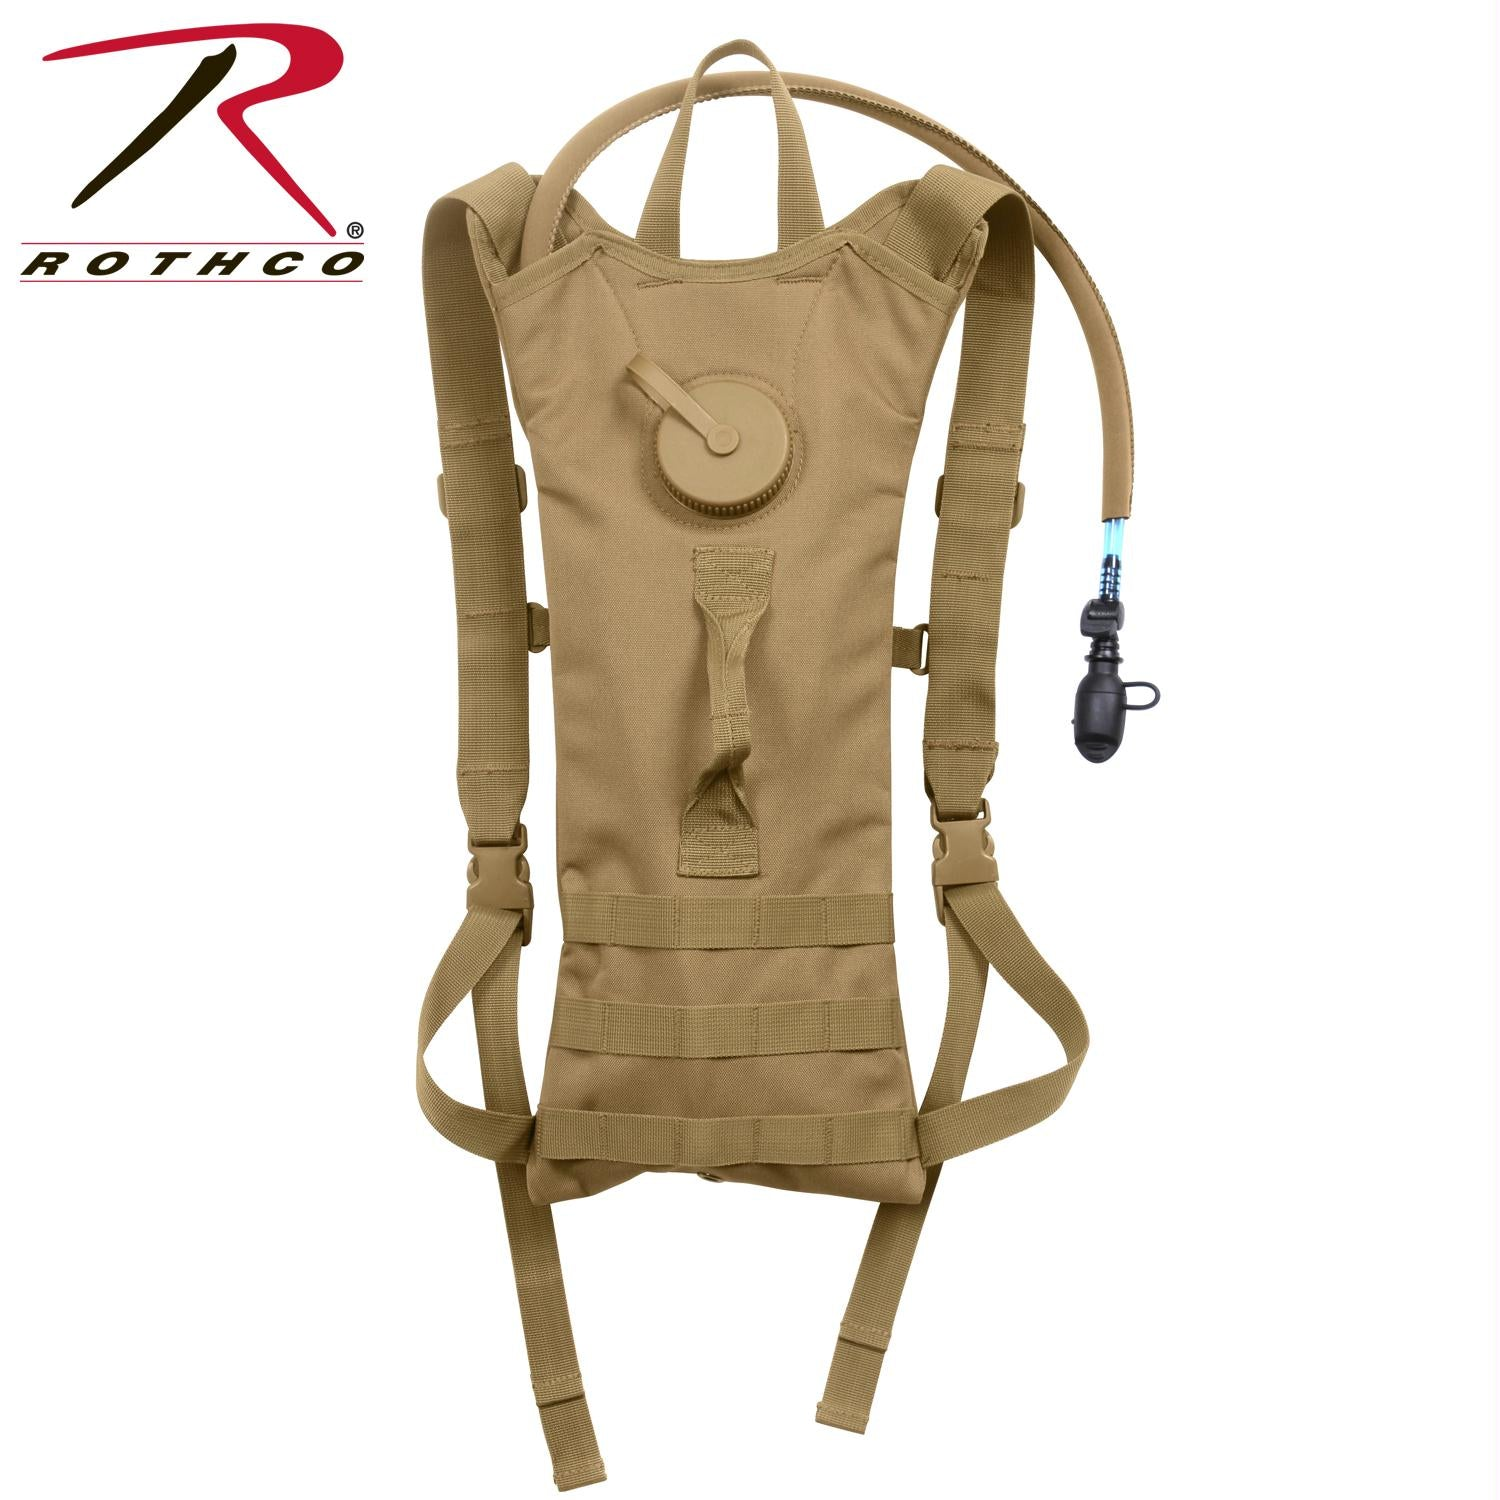 Rothco MOLLE 3 Liter Backstrap Hydration System - Coyote Brown